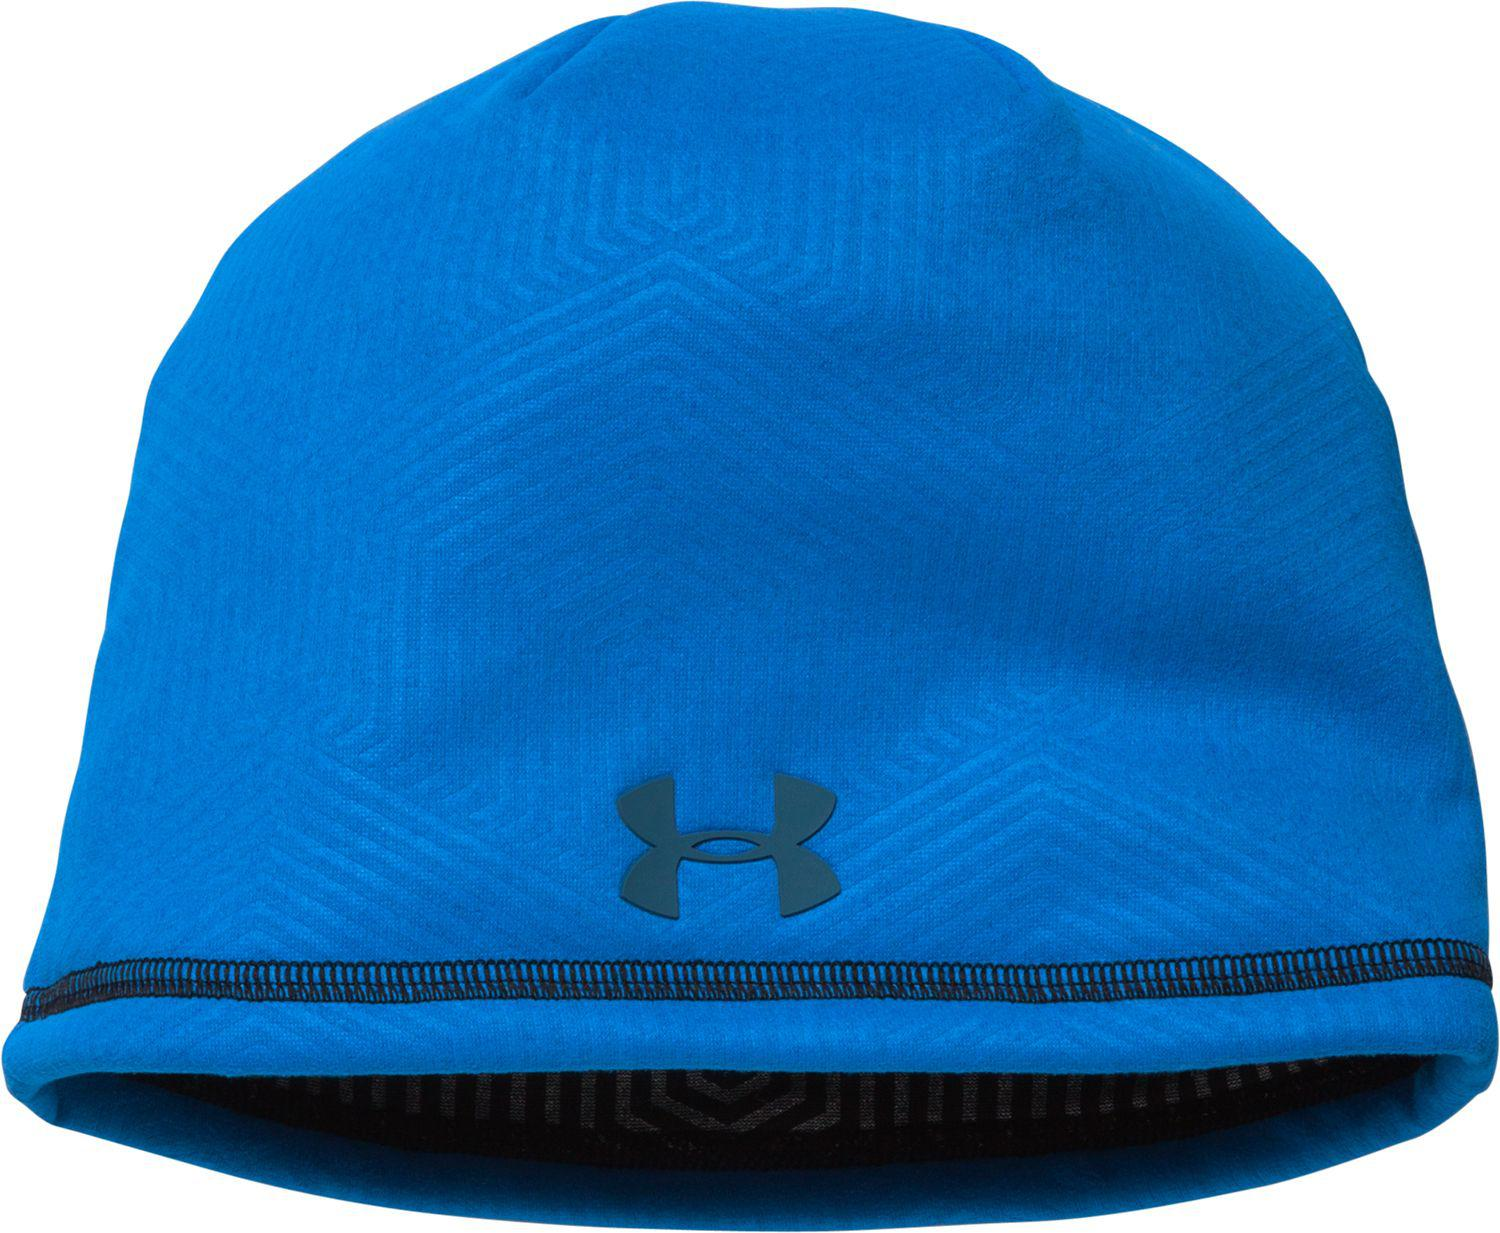 6712e332b62 Under Armour - Blue Coldgear Infrared Elements Storm 2.0 Beanie for Men -  Lyst